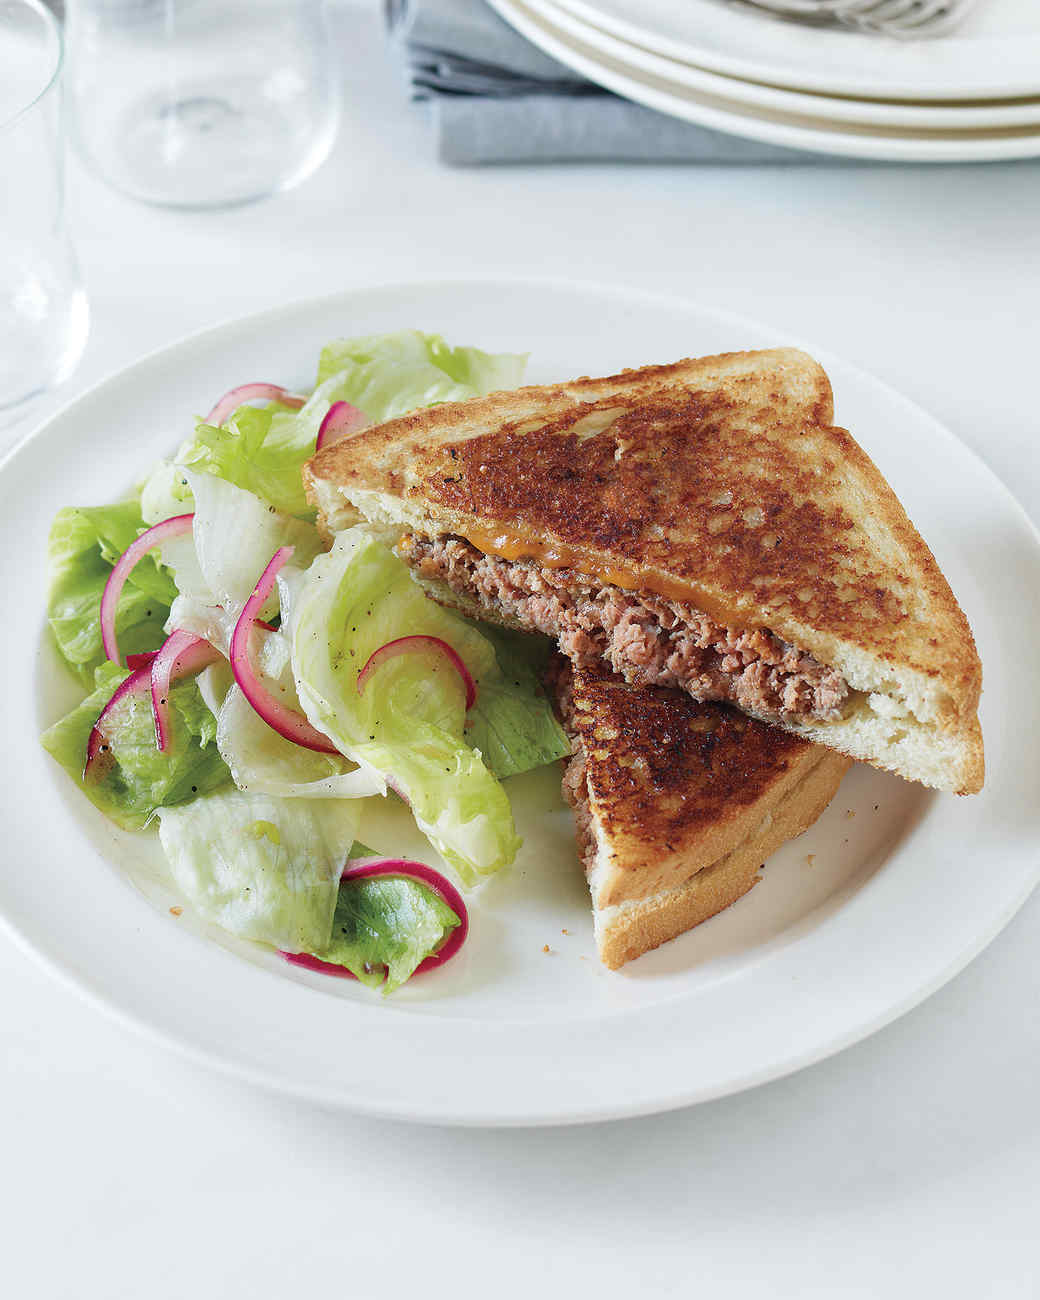 Patty Melt with Pickled Onion Salad